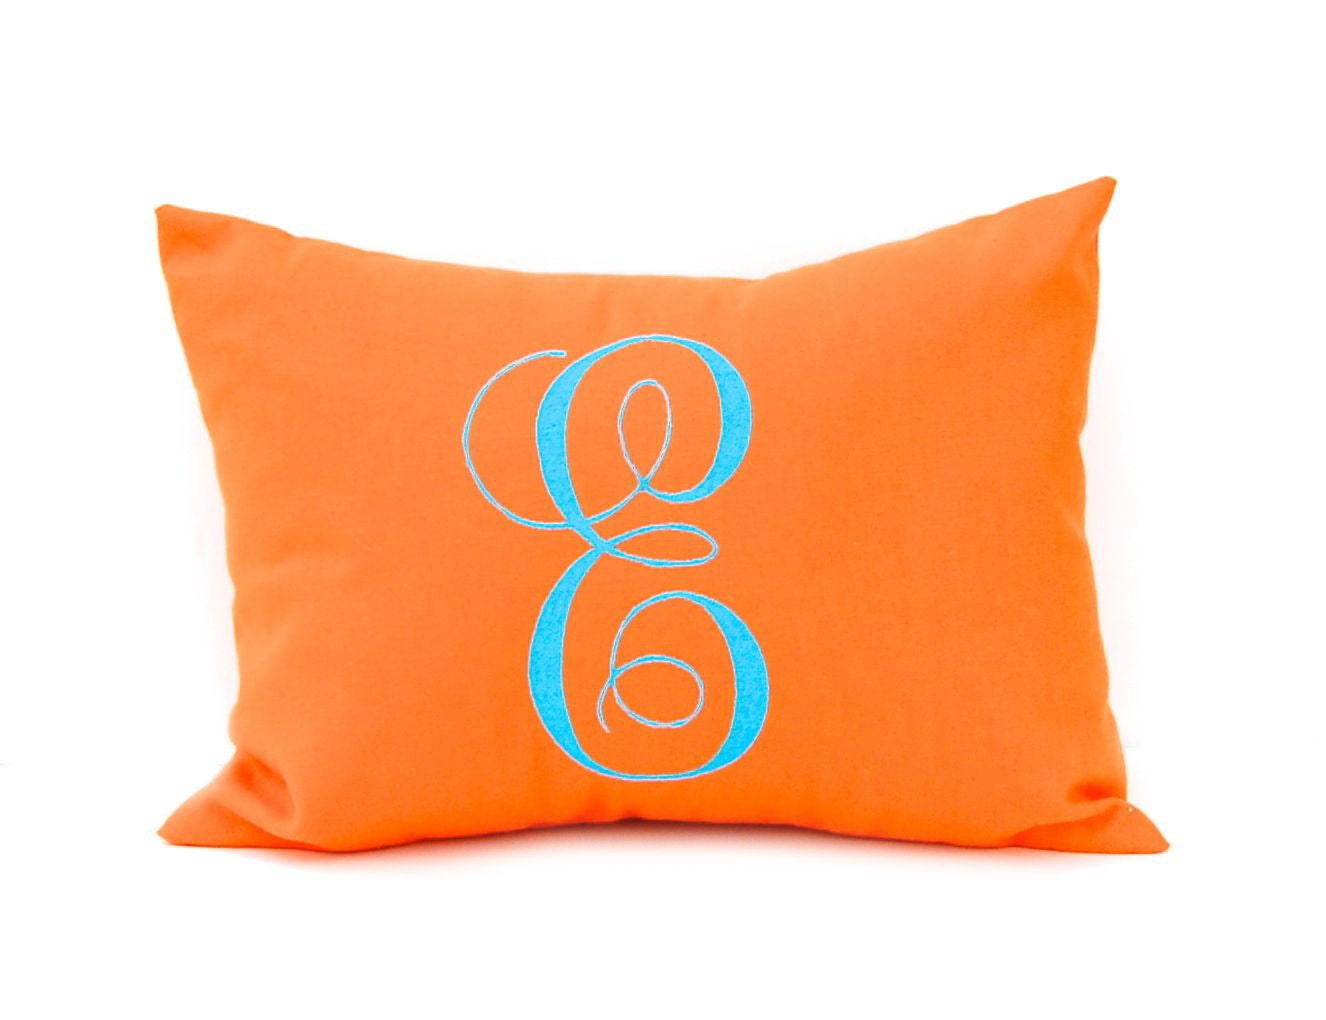 Monogram Pillow Decorative Throw Pillow Cover Solid Pillow